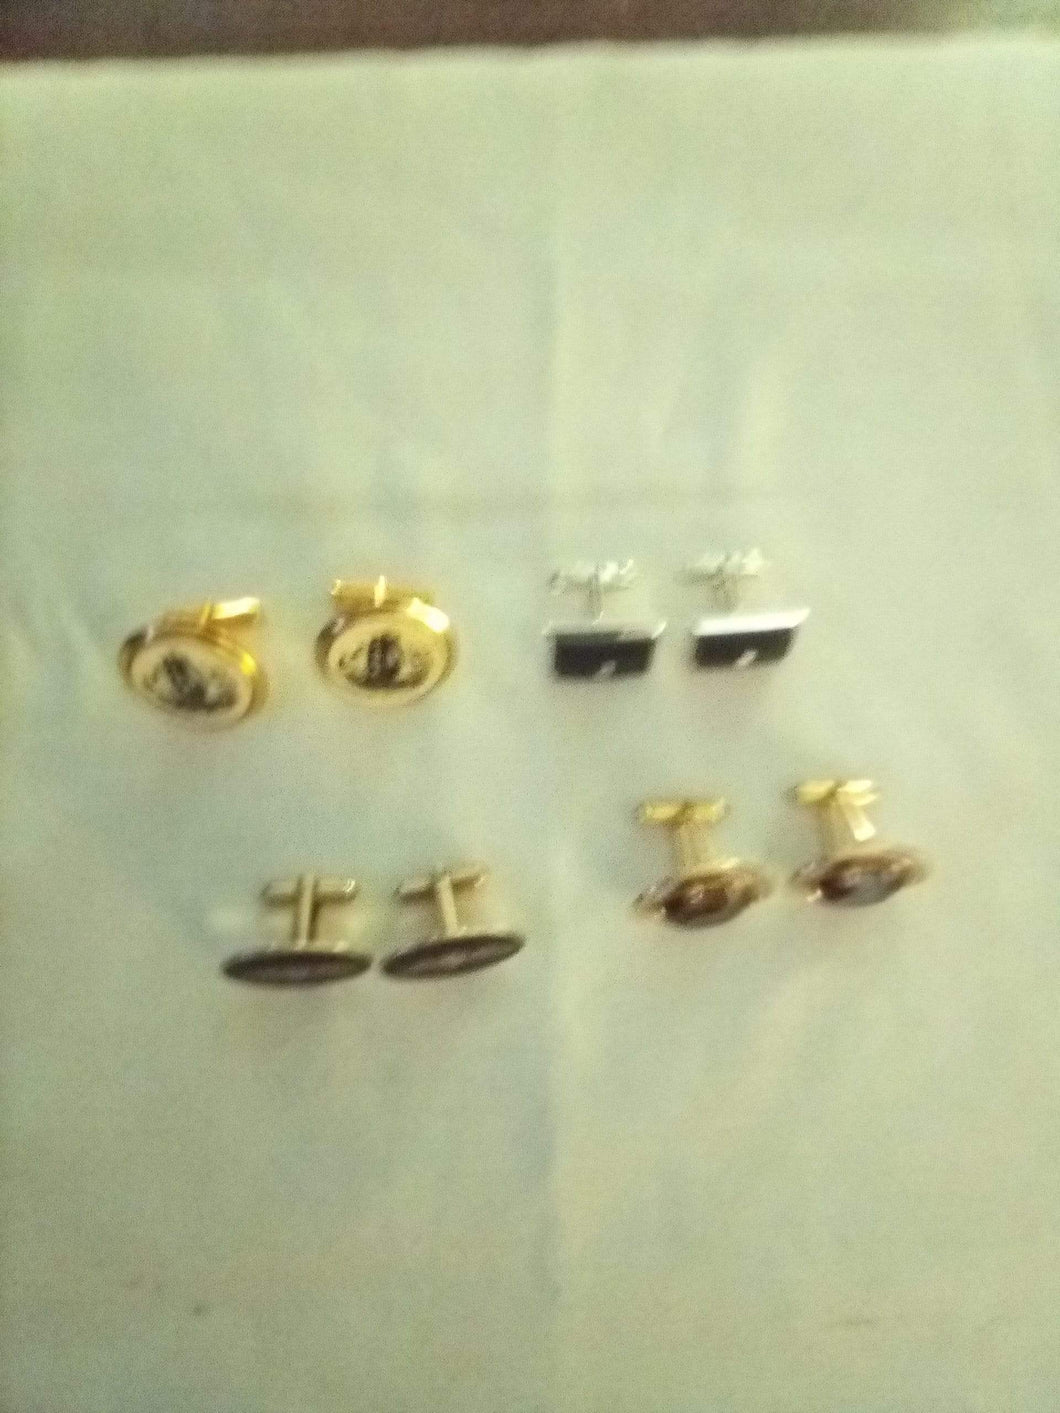 4 matching sets of dressy cufflinks - B&P'sringsnthings